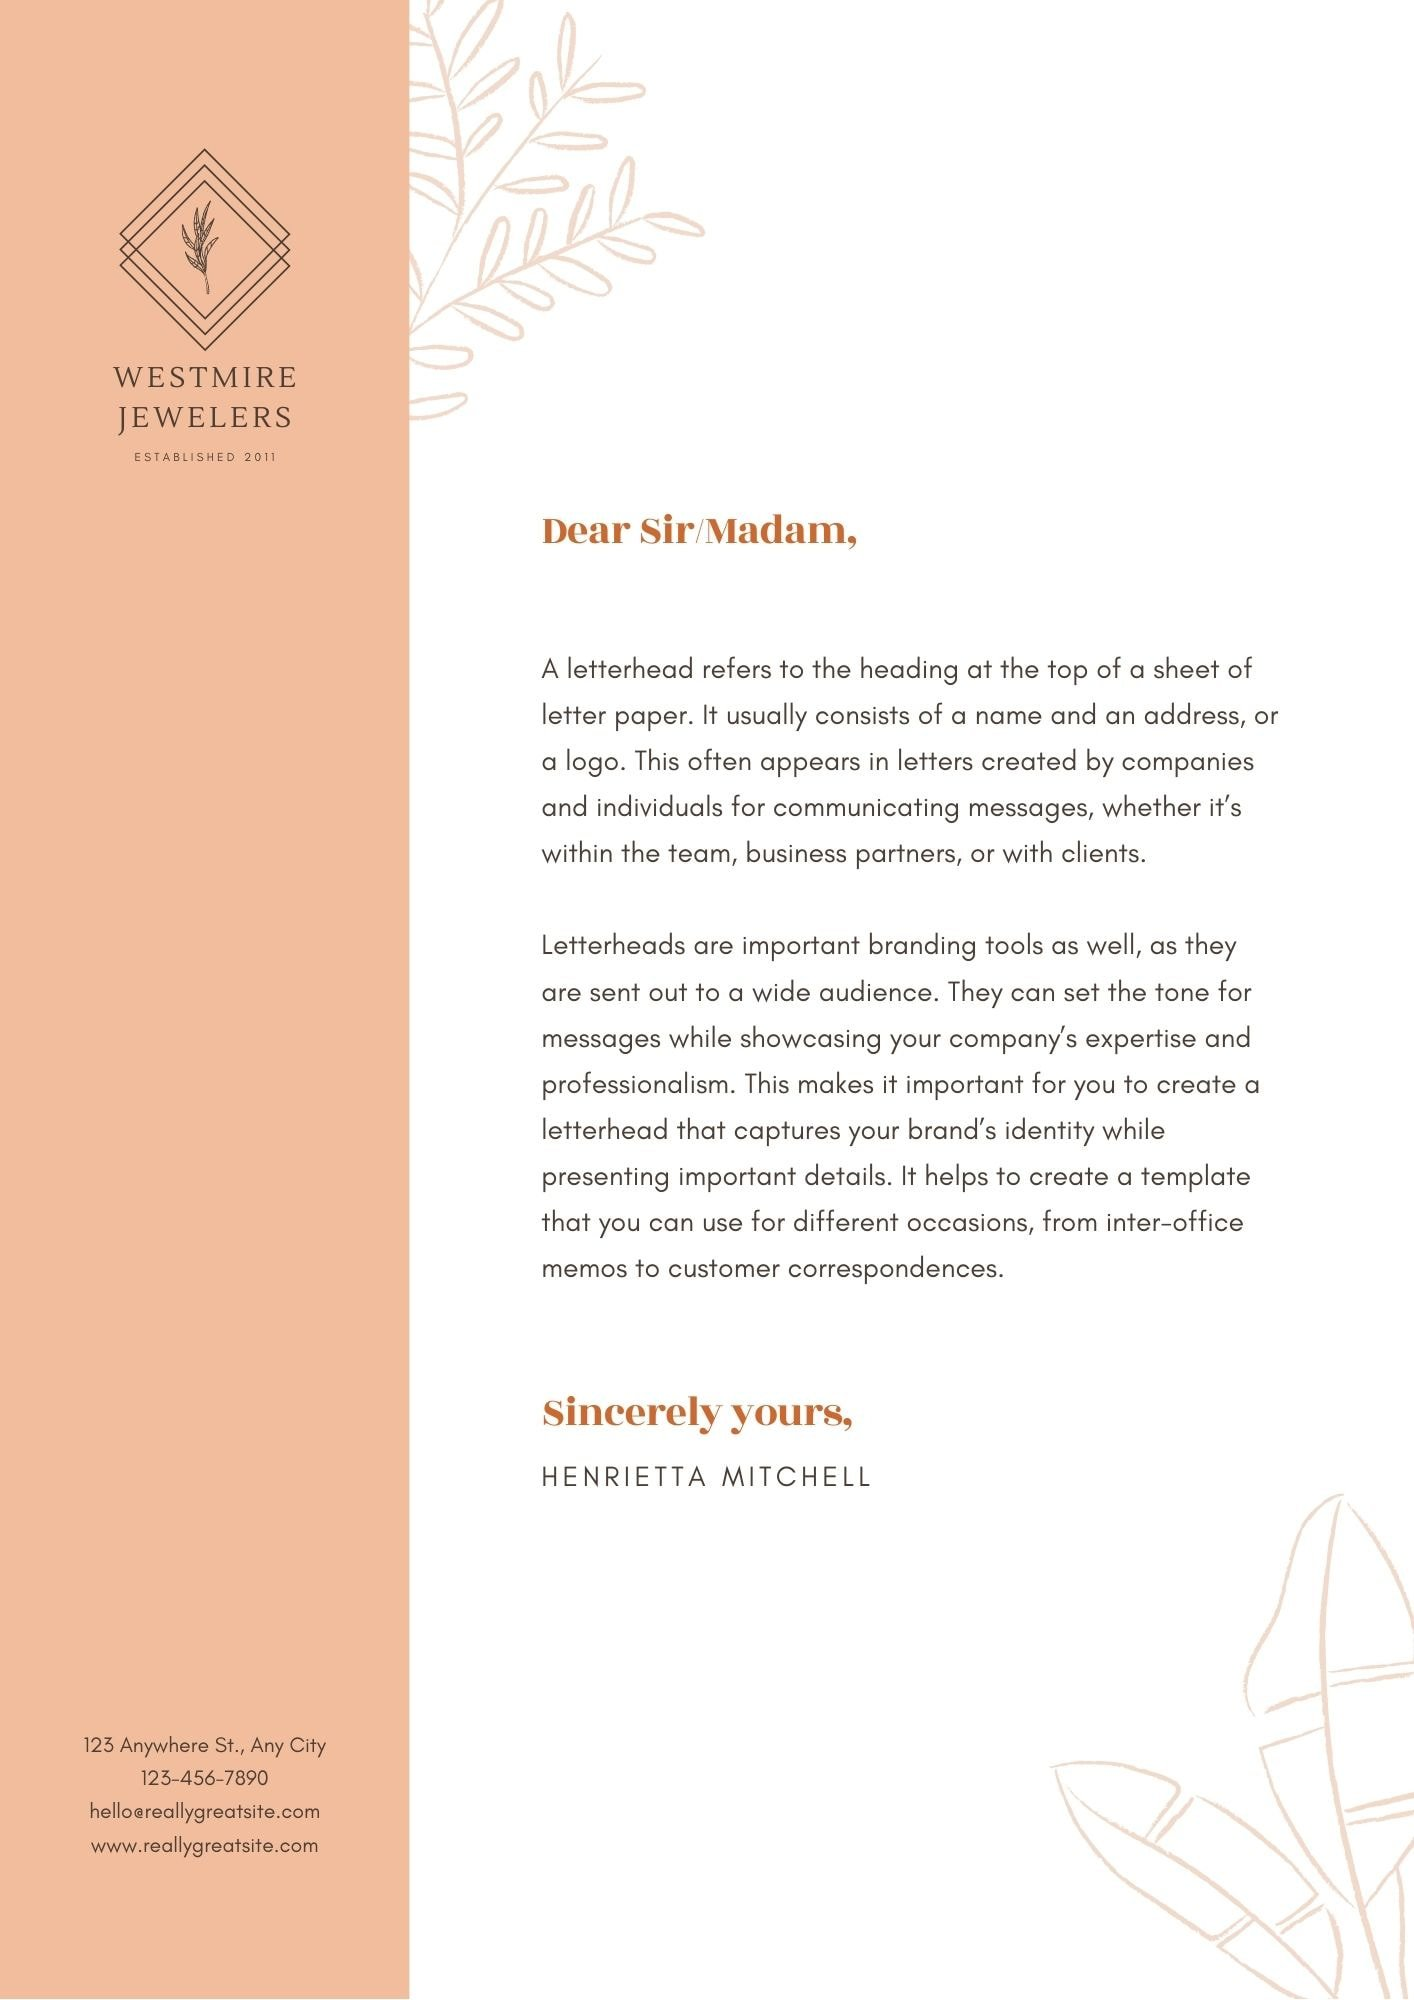 cover letter examples canva resume salmon and illustrative letterhead professional format Resume Canva Resume Cover Letter